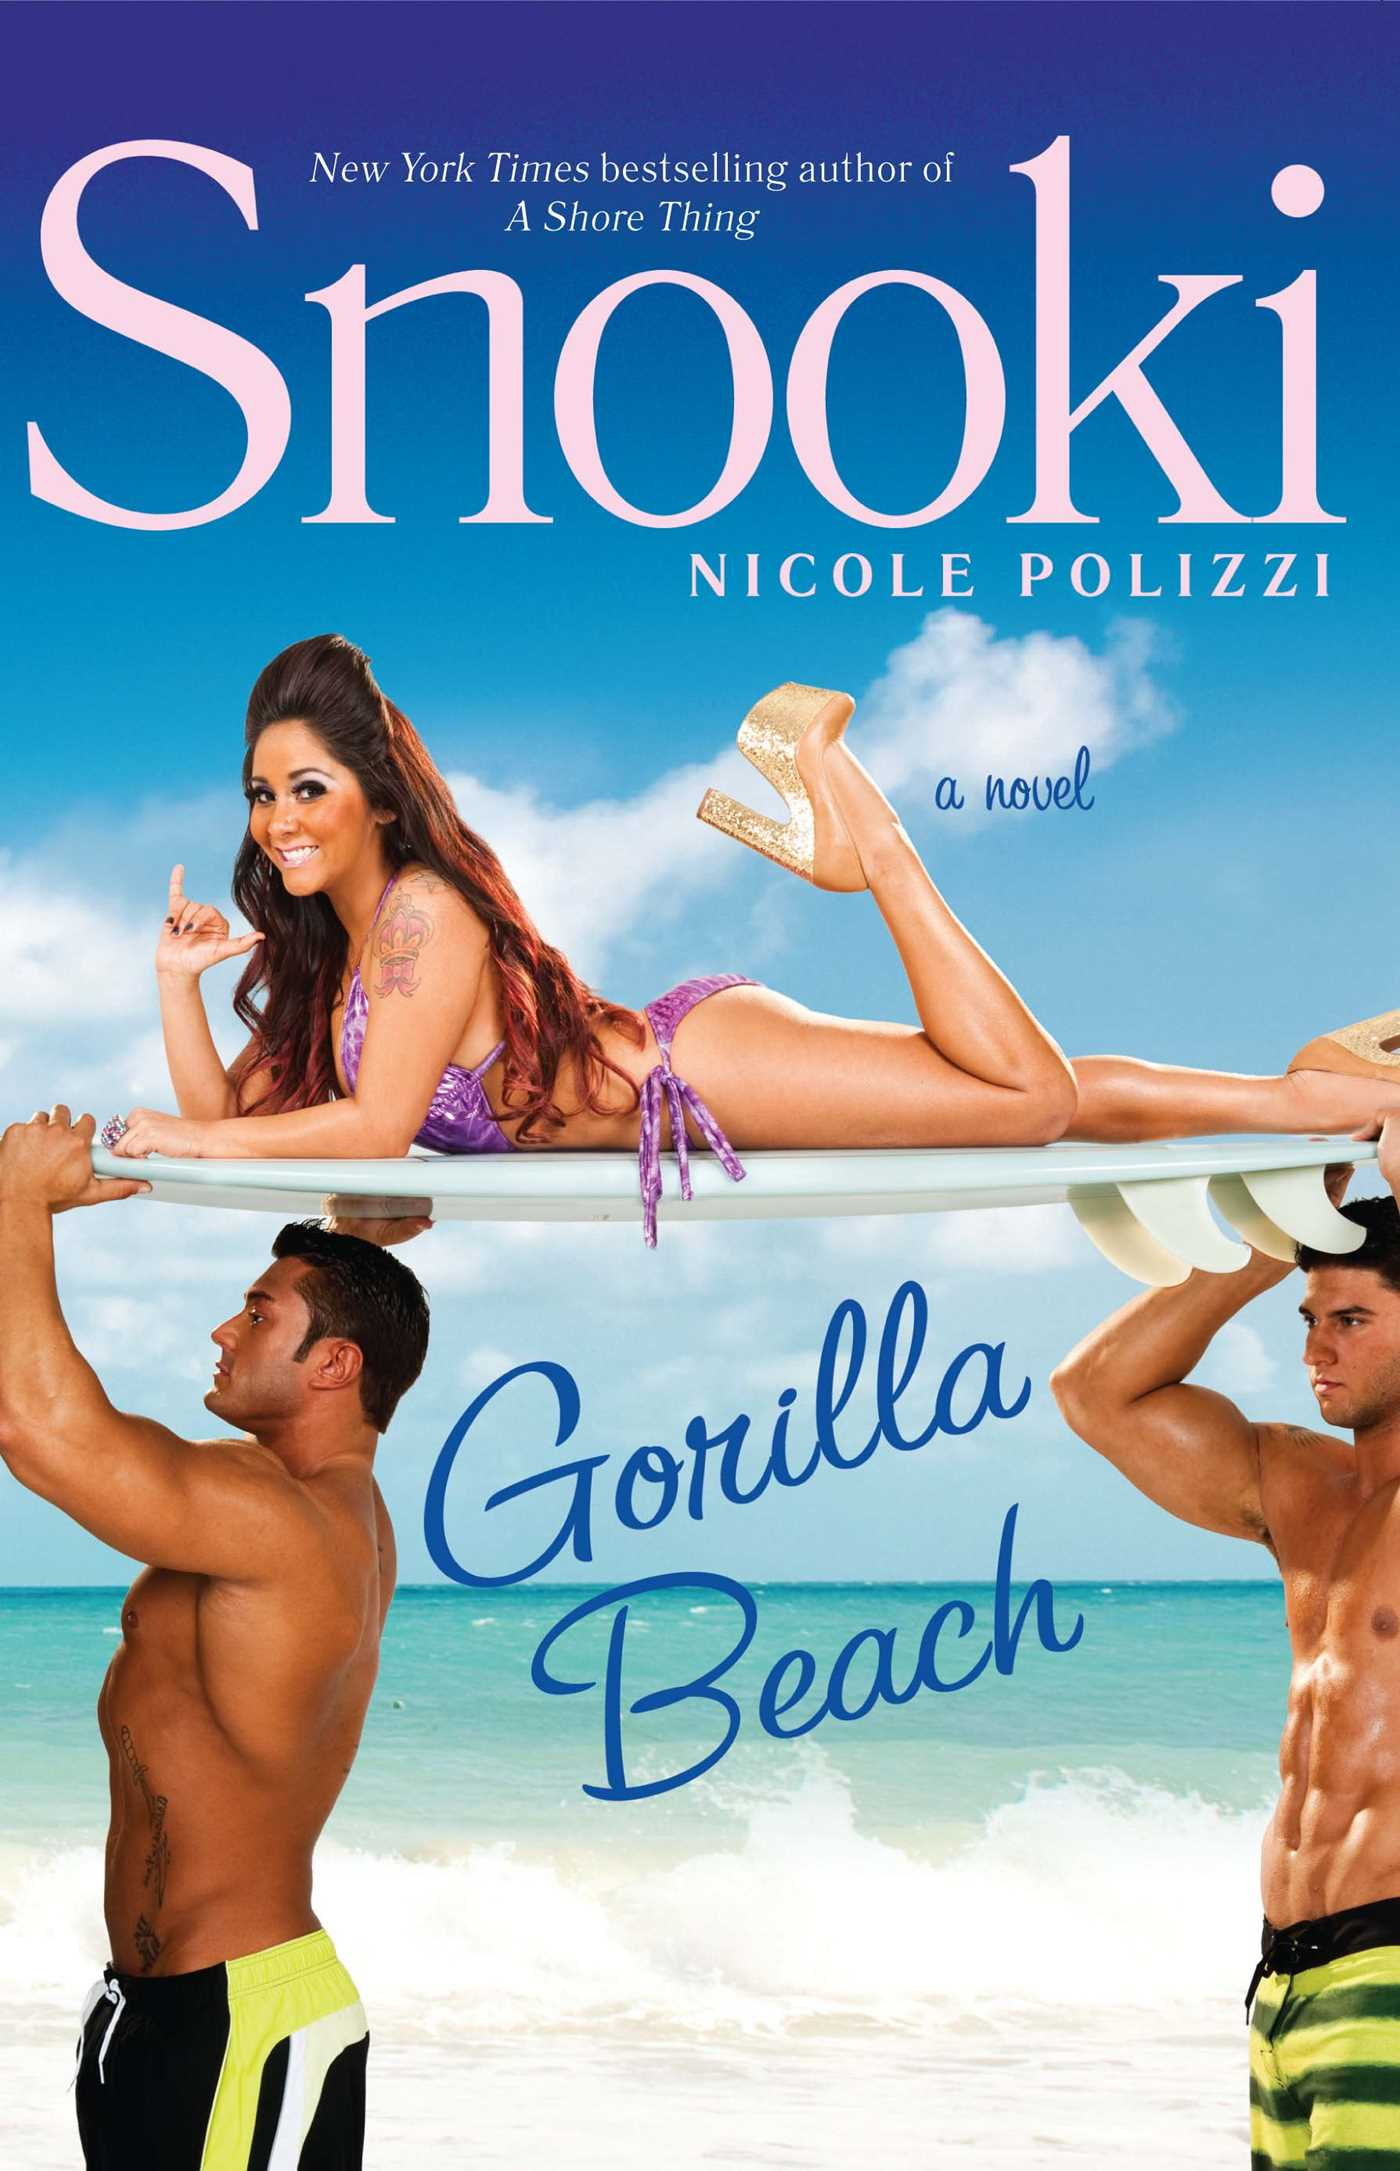 Gorilla-beach-9781451657104_hr